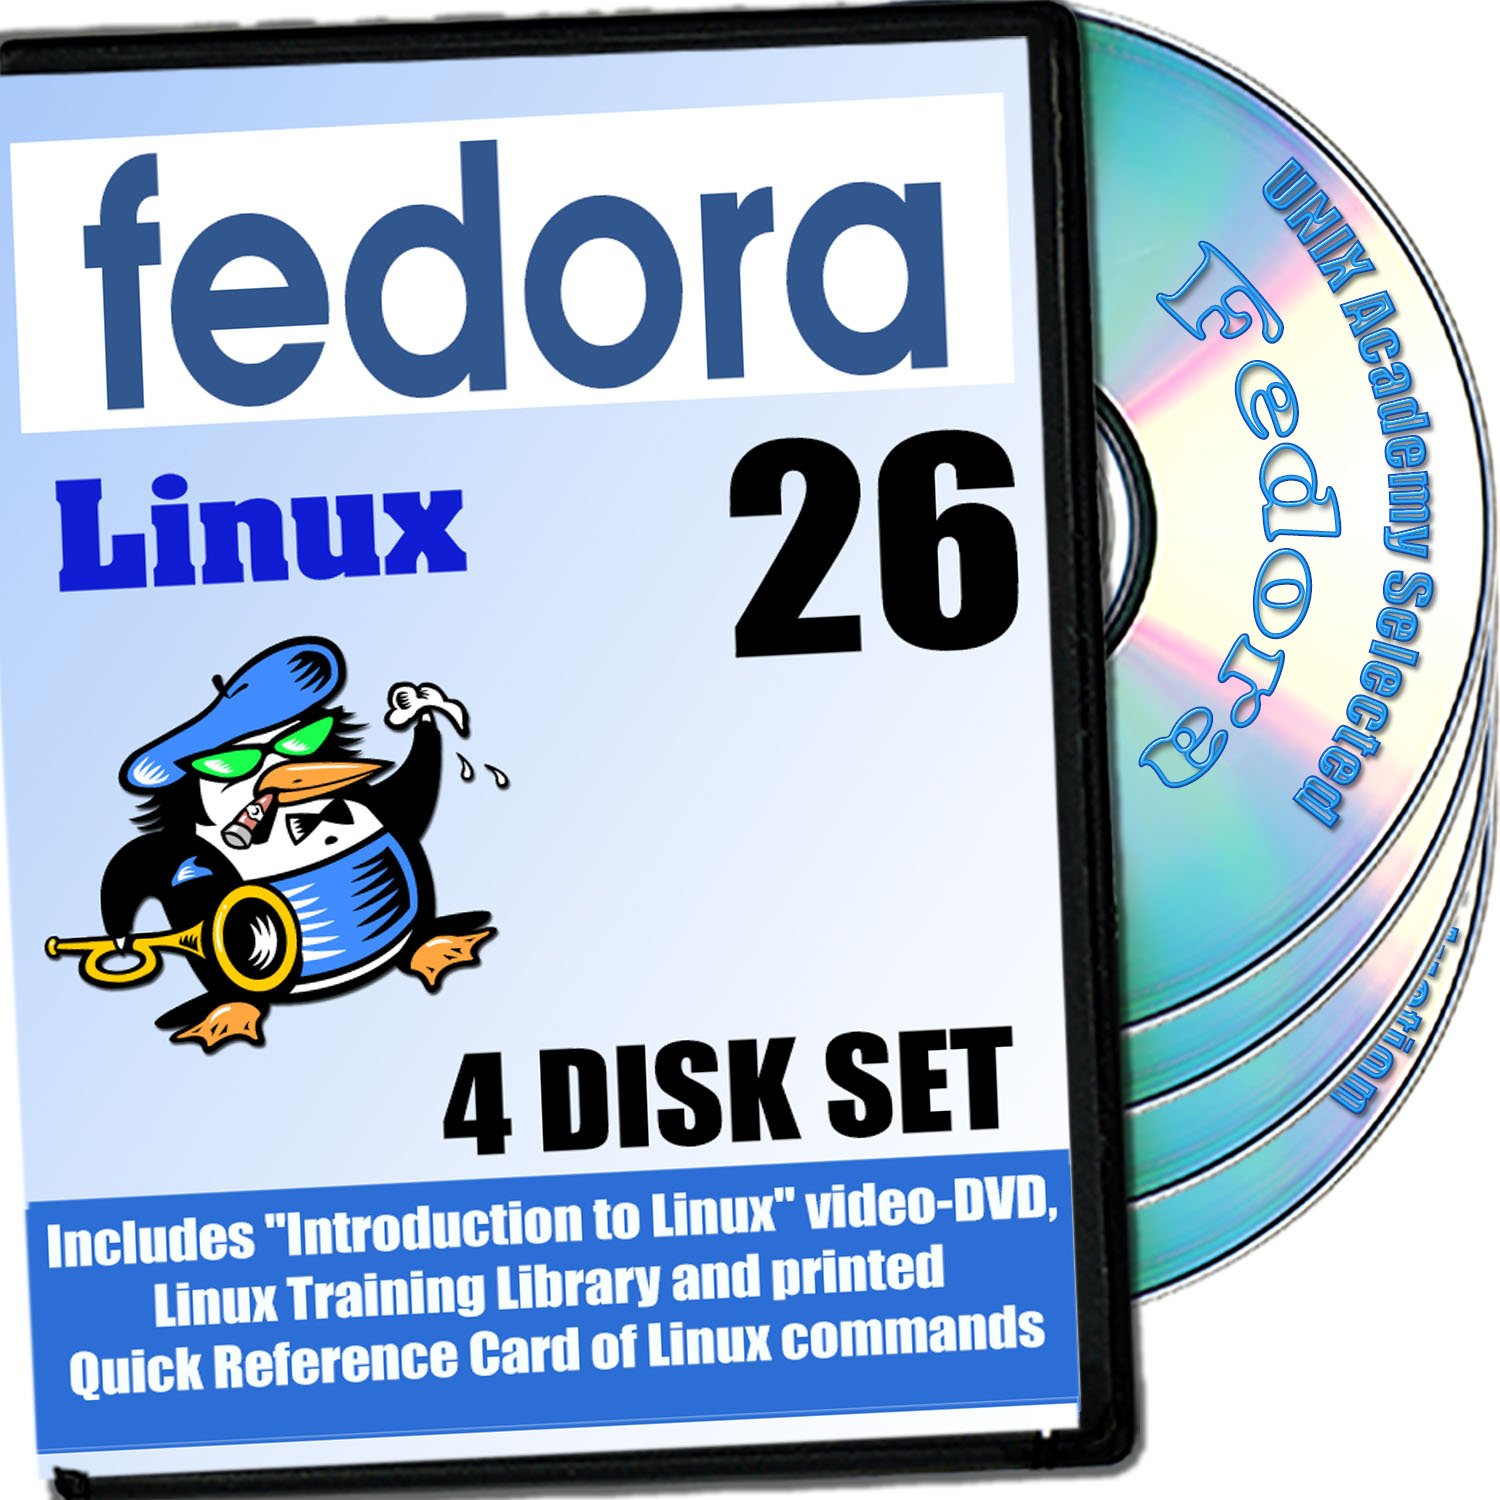 Fedora 25 Linux, 4-Discs DVD Installation And Reference Set by PRIZIX